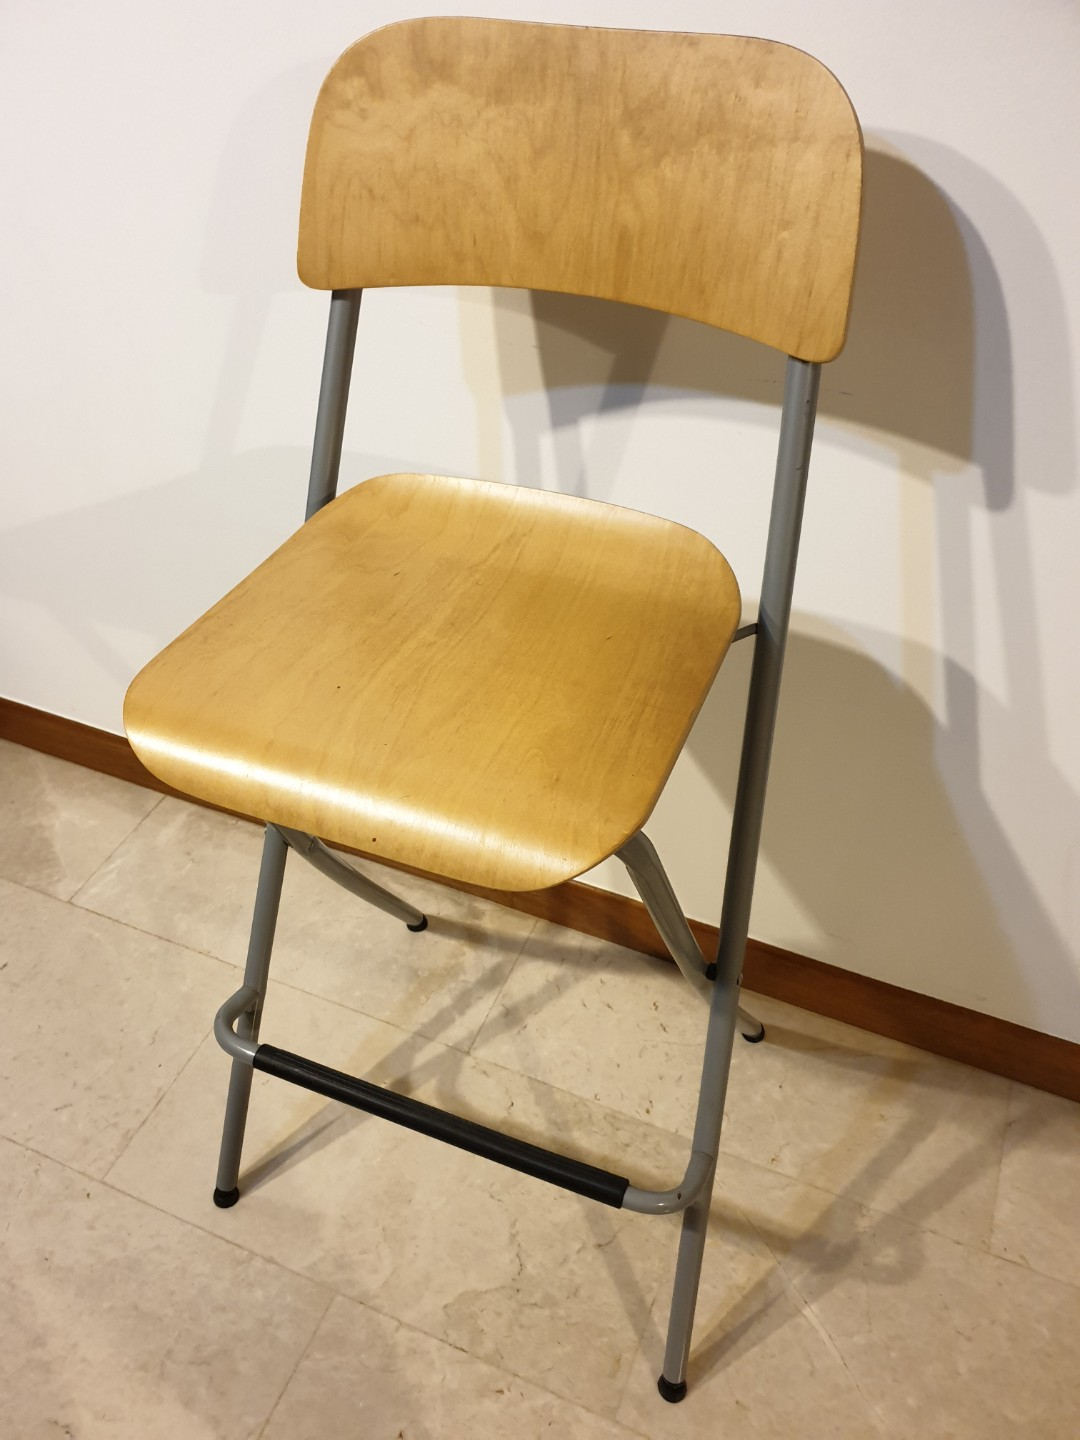 Surprising Foldable High Chair Bar Stool Ikea Caraccident5 Cool Chair Designs And Ideas Caraccident5Info